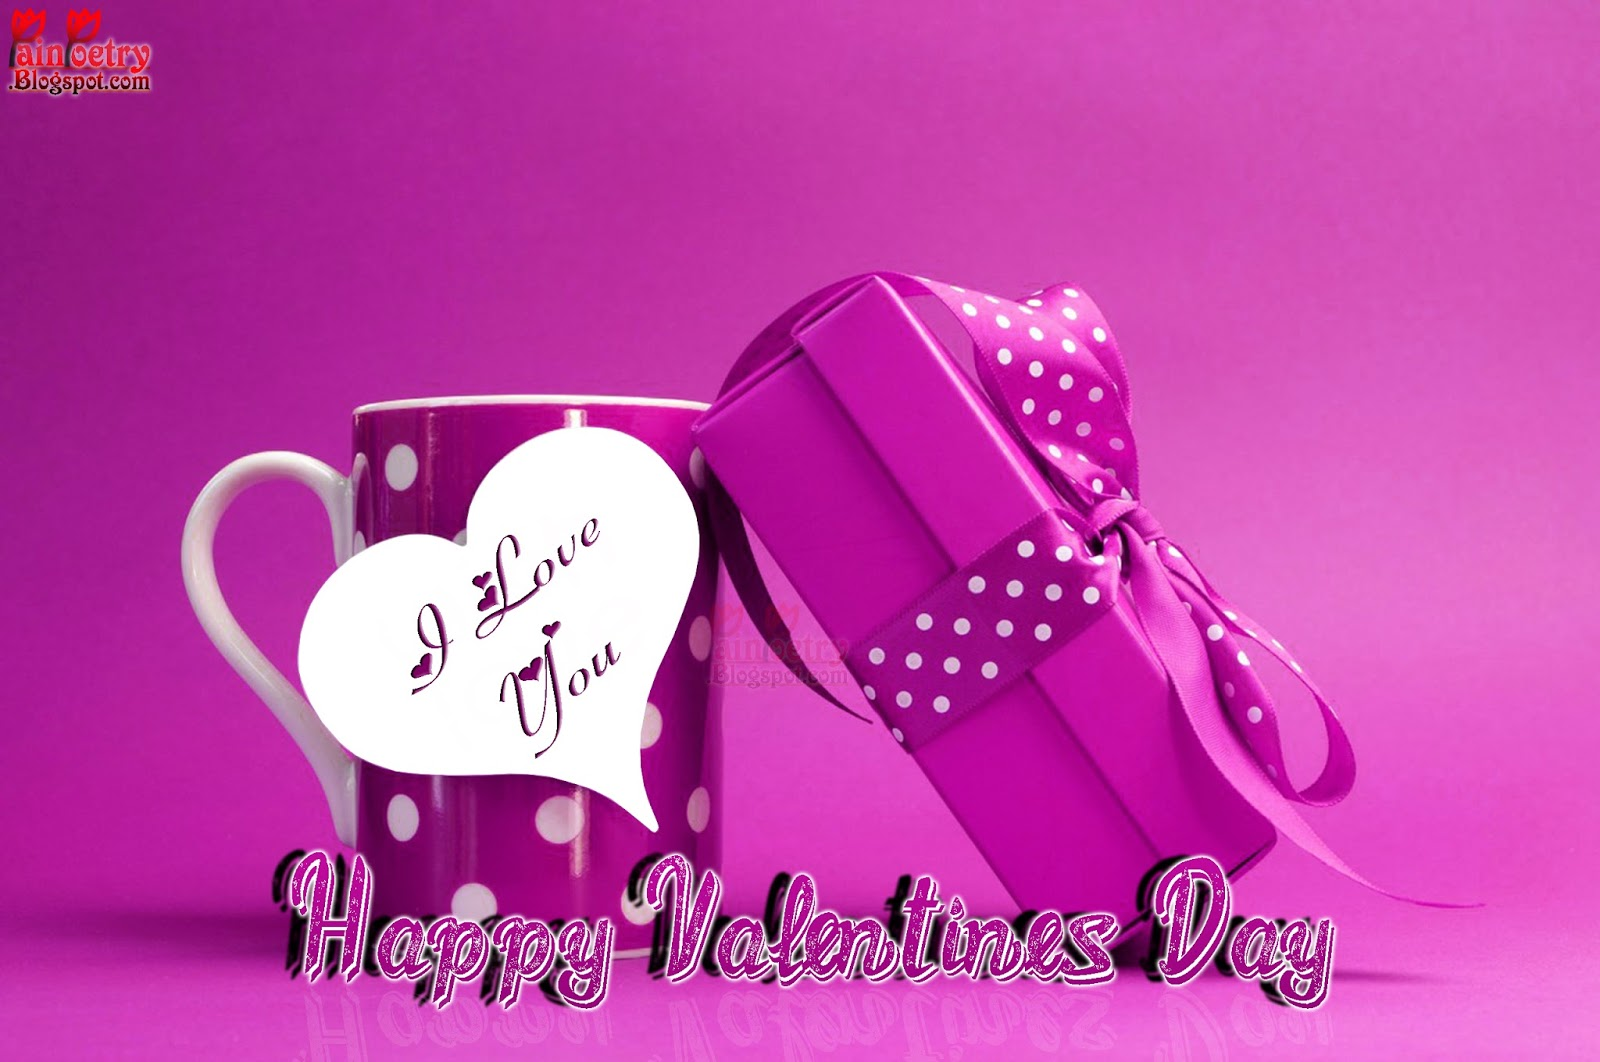 Happy-Walentines-Day-Tea-Cup-With-Love-Gift-HD-Wide